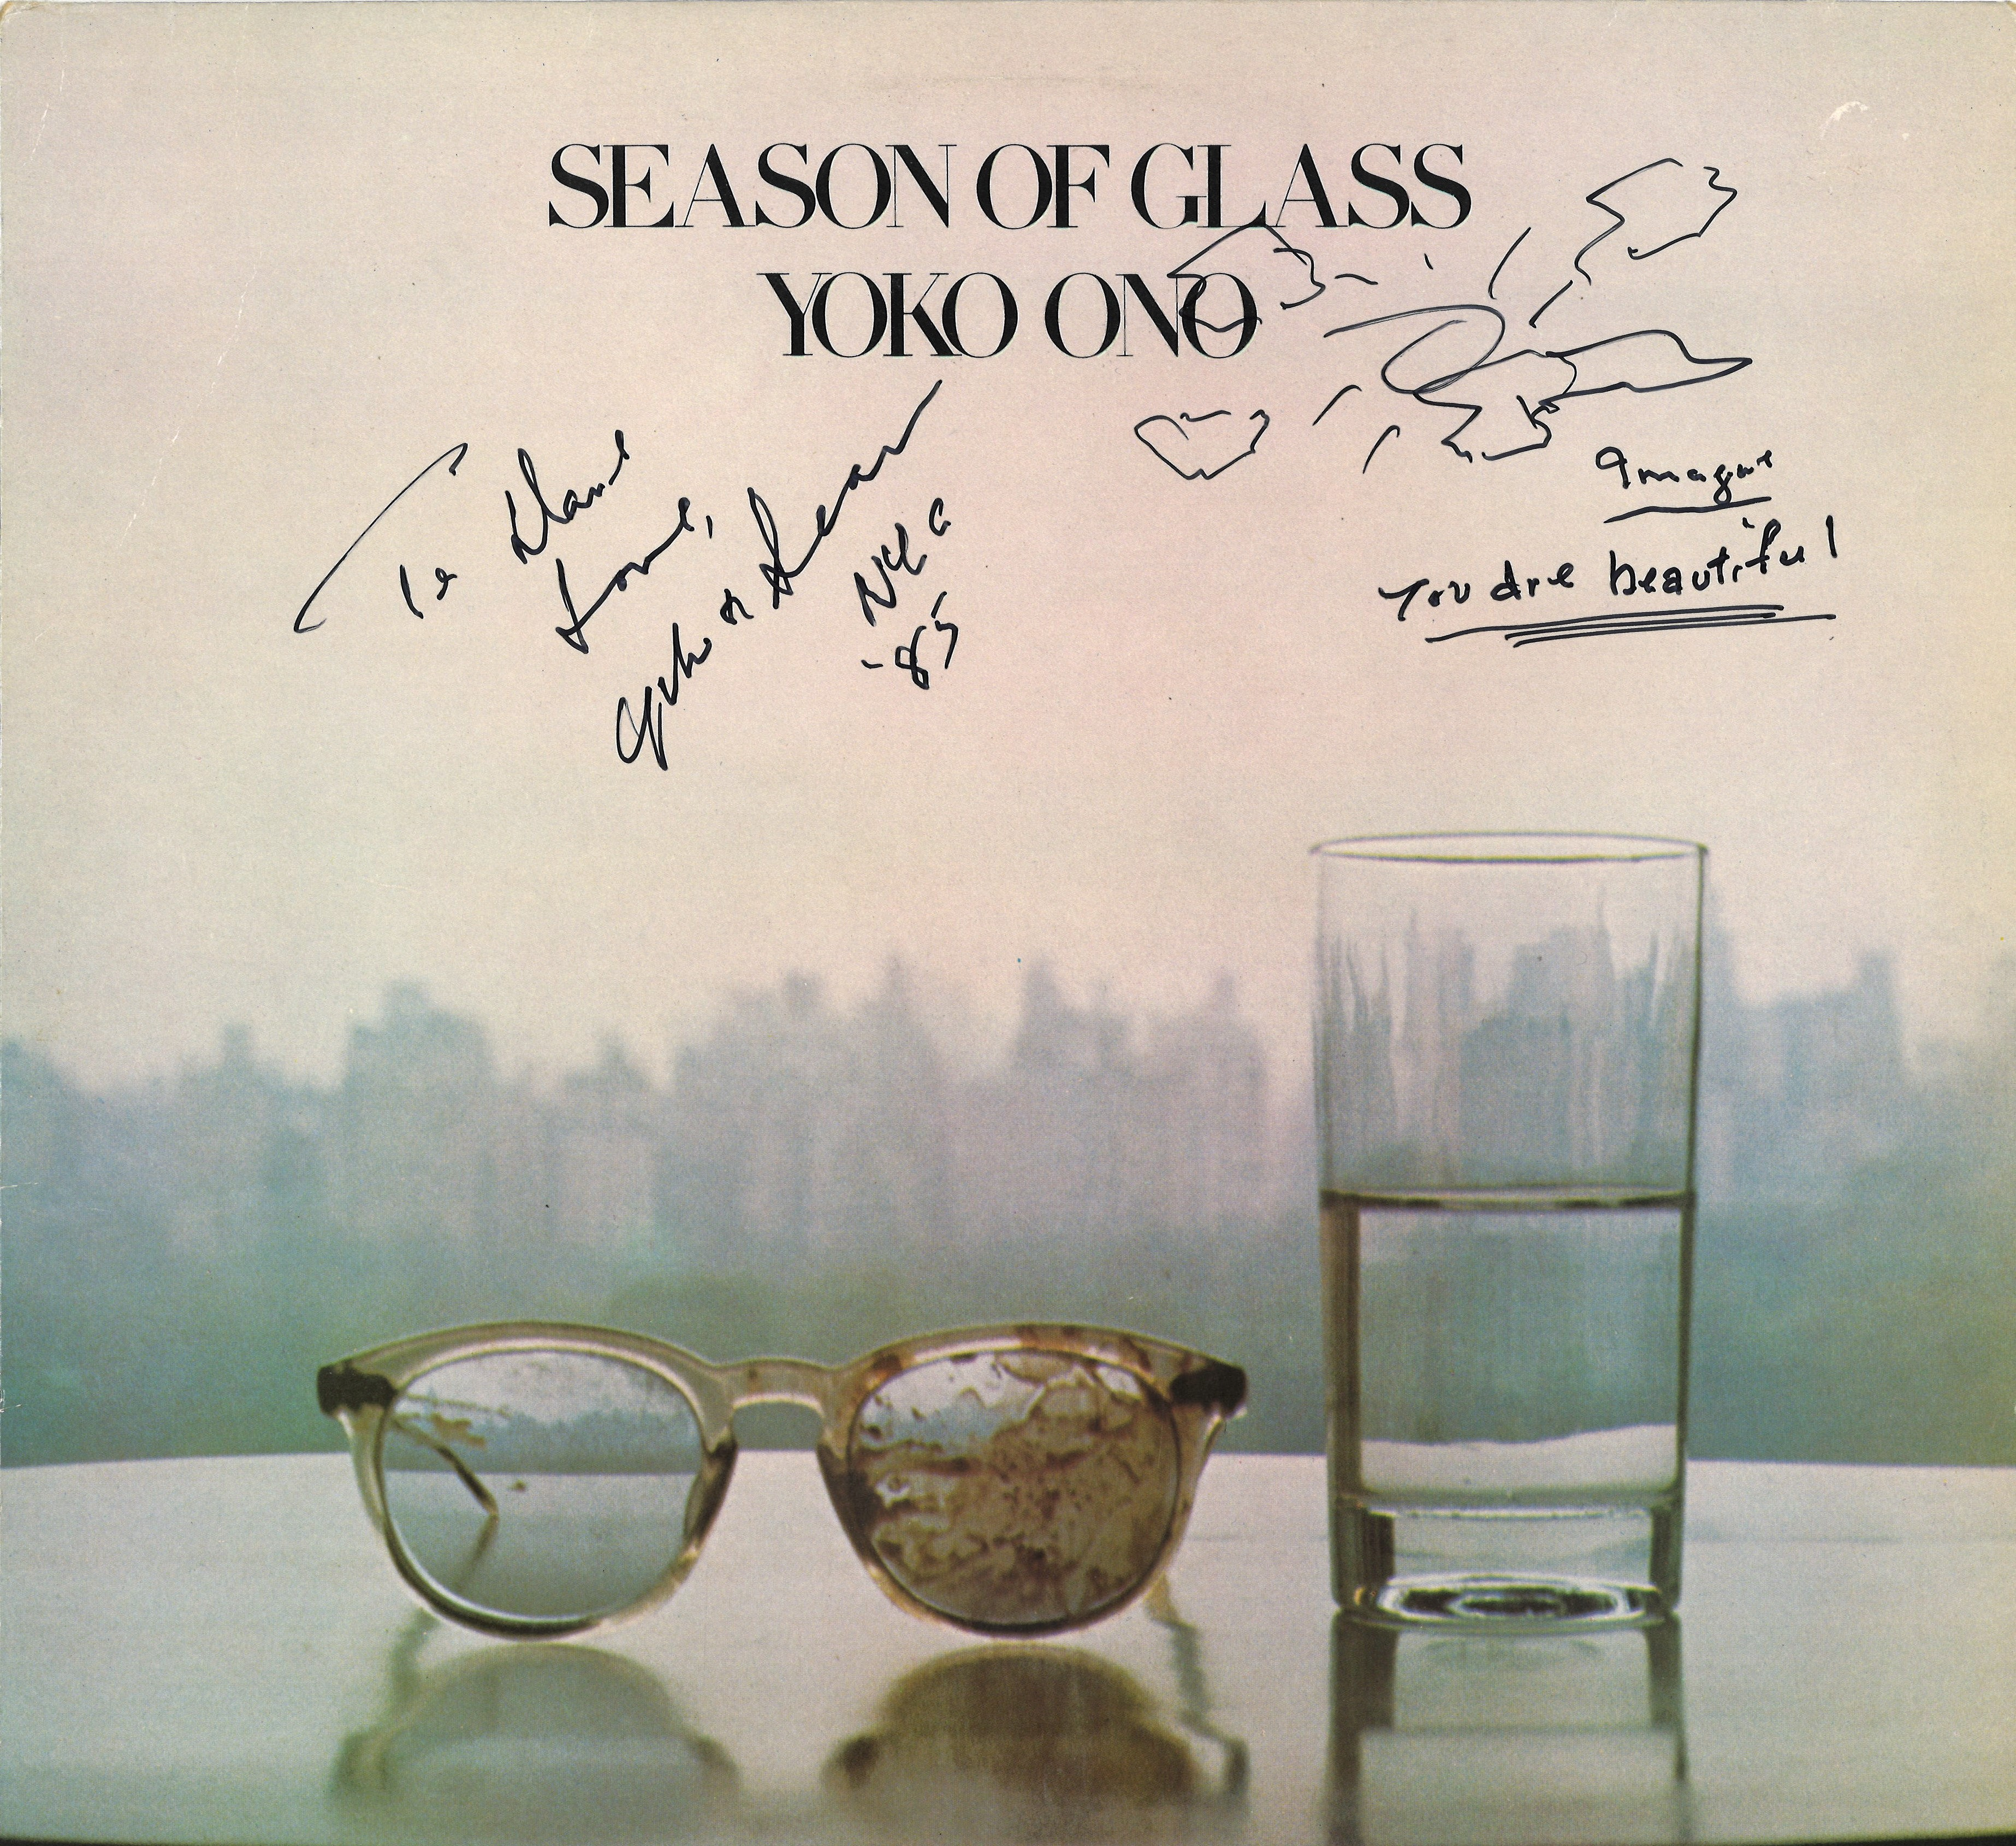 Music Season Of Glass Yoko Ono Album Cover Signed By Yoko Ono On The Front With Message On Revers